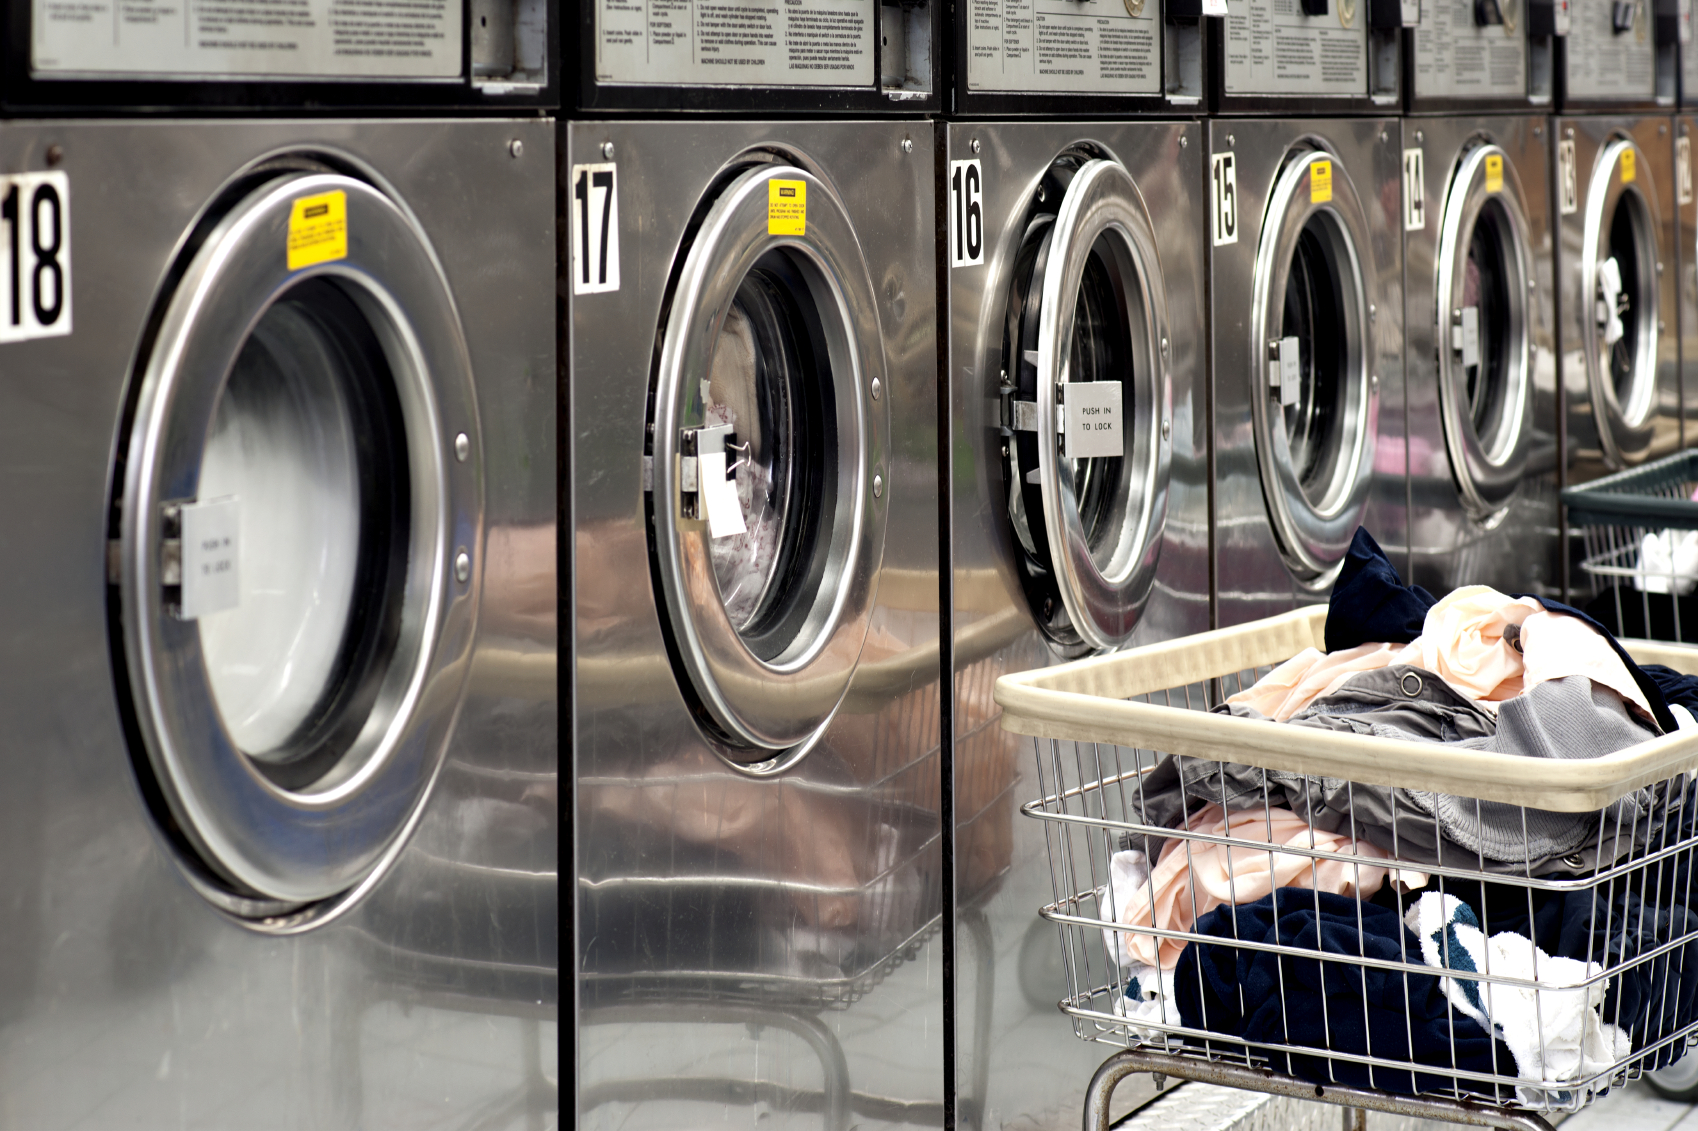 bisnis laundry koin